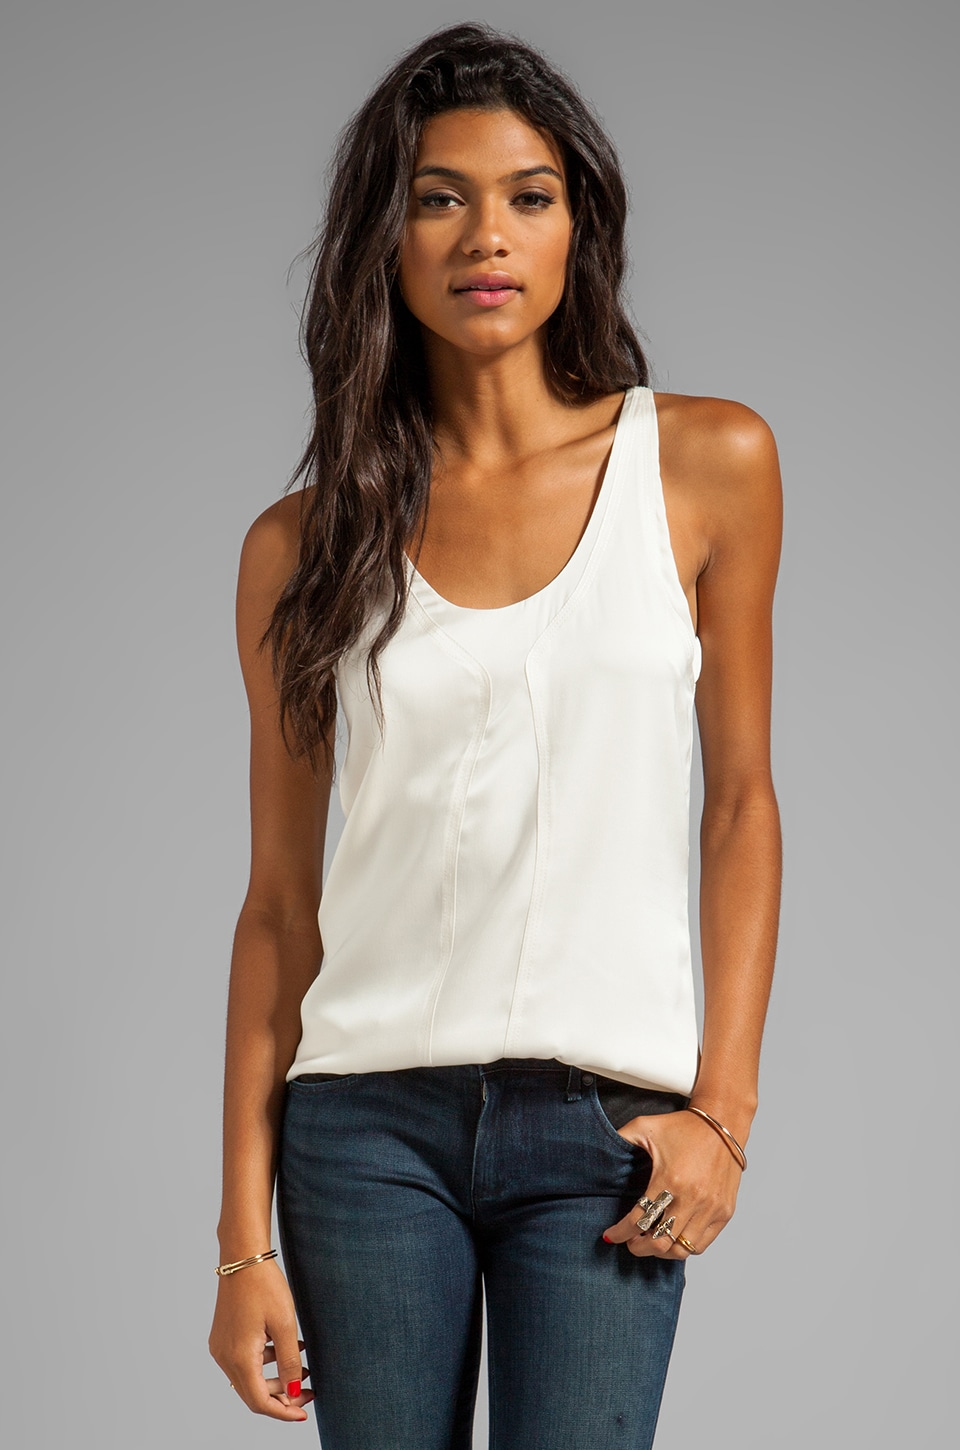 Trina Turk Essential Georgette Vontaine Tank in Ivory